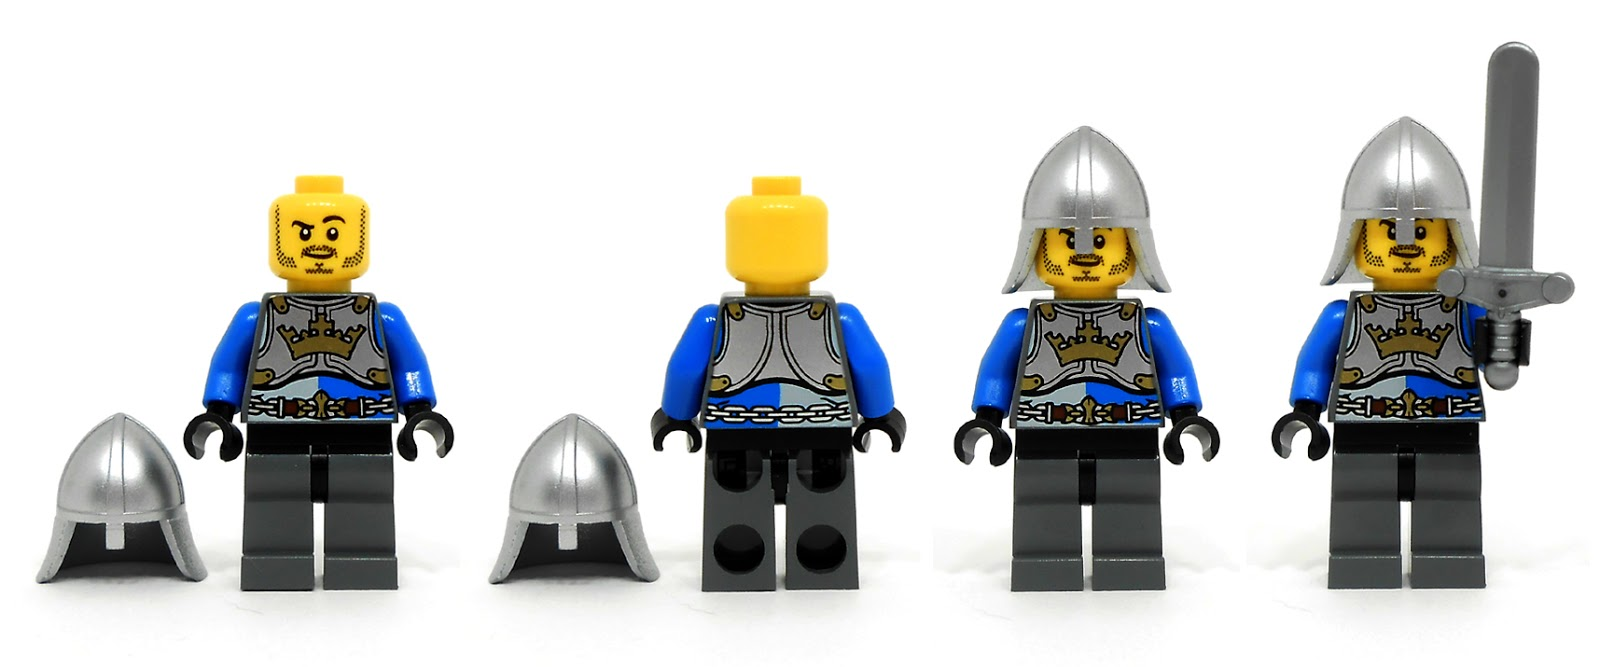 Lego fantasy era crown knight scale mail with crown breastplate - This King S Knight And Spear With Scale Mail Torso Print Both Front And Back Single Sided Face Print He Has A Metallic Silver Helmet With Broad Brim